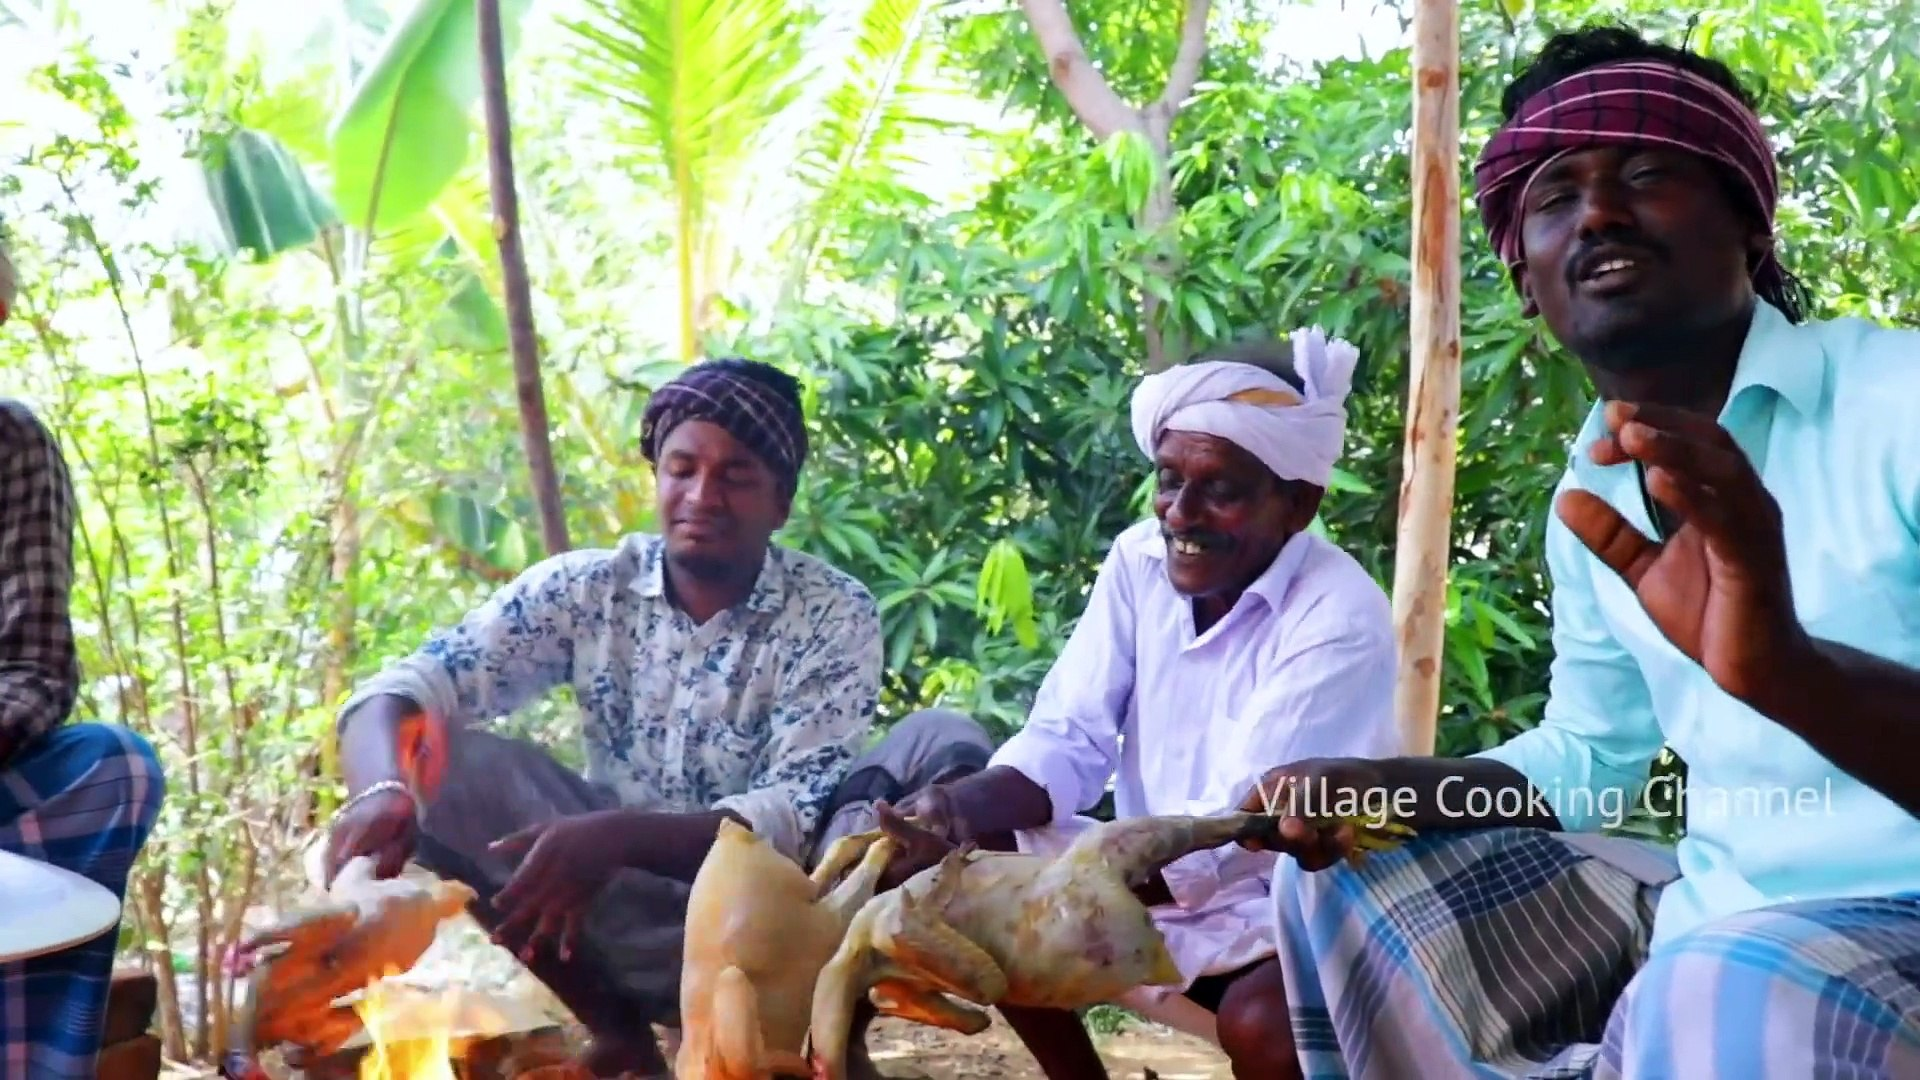 FULL CHICKEN EATING - Full Country Chicken Cooking and Eating in Village - Healthy Village Food